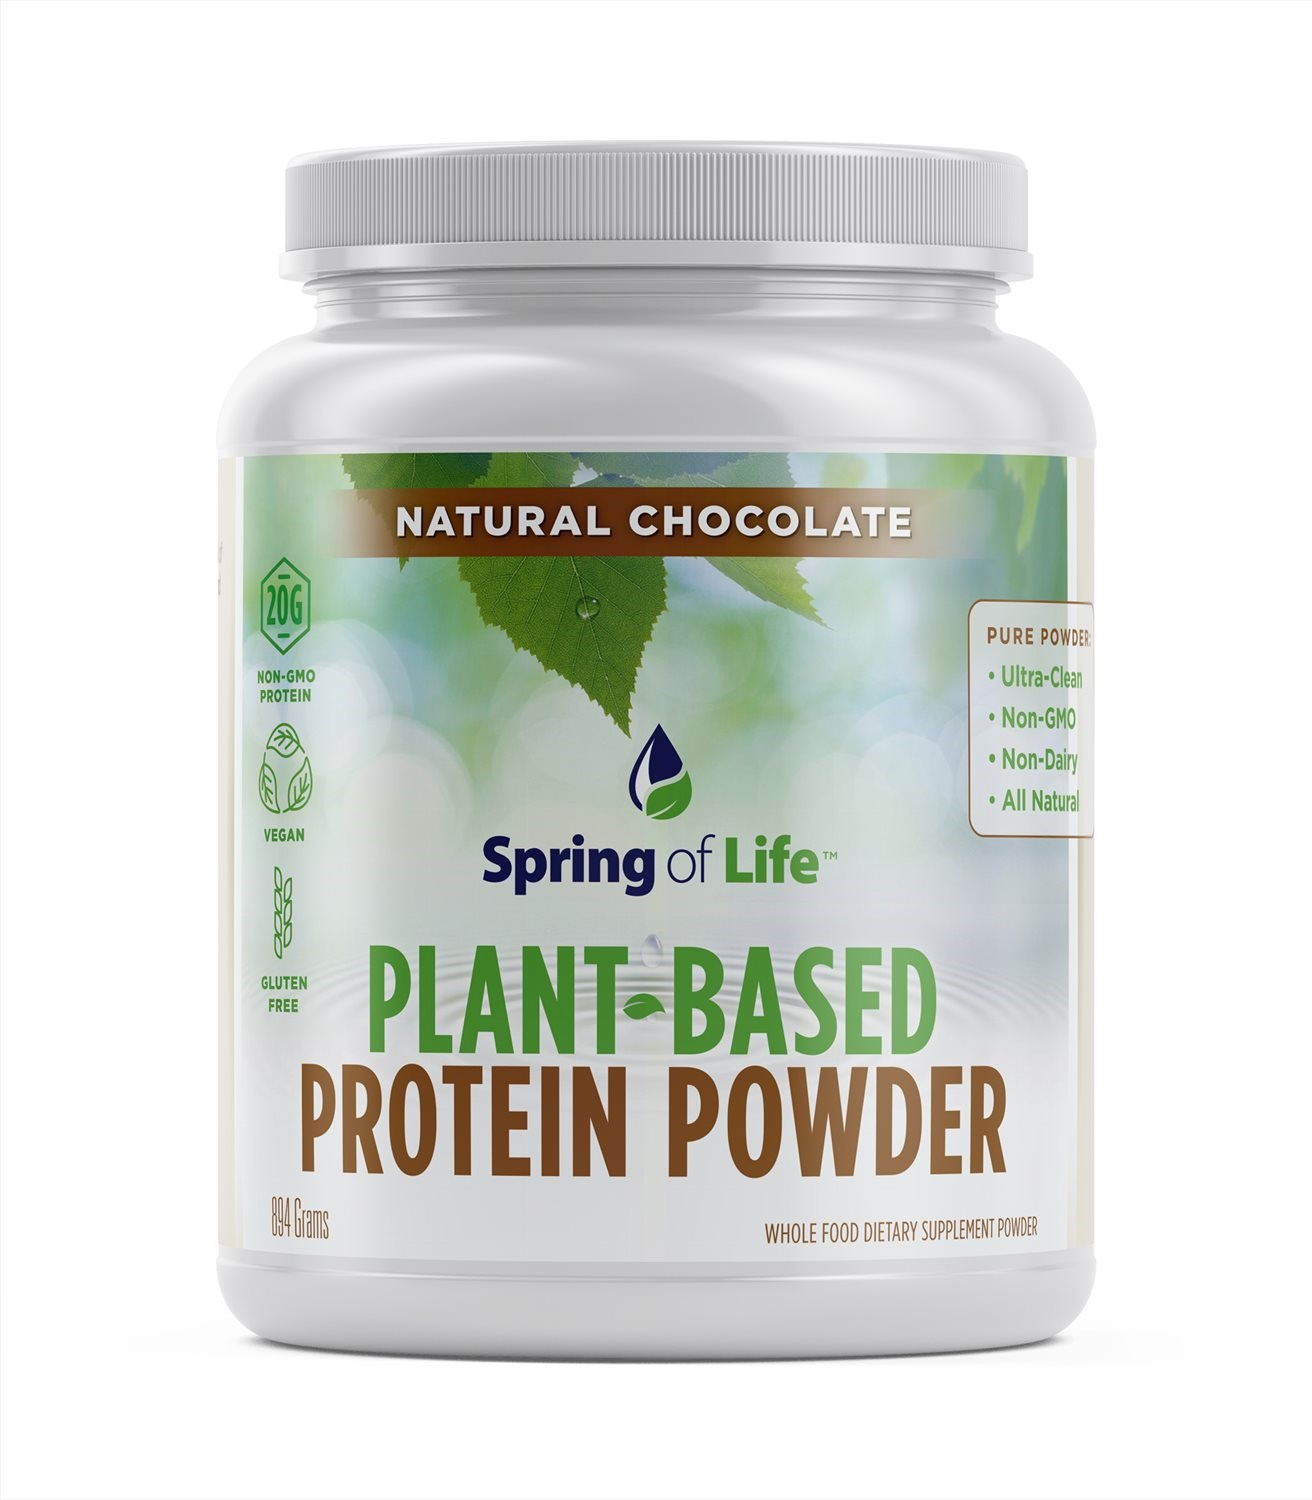 Spring of Life Plant-Based Protein Powder